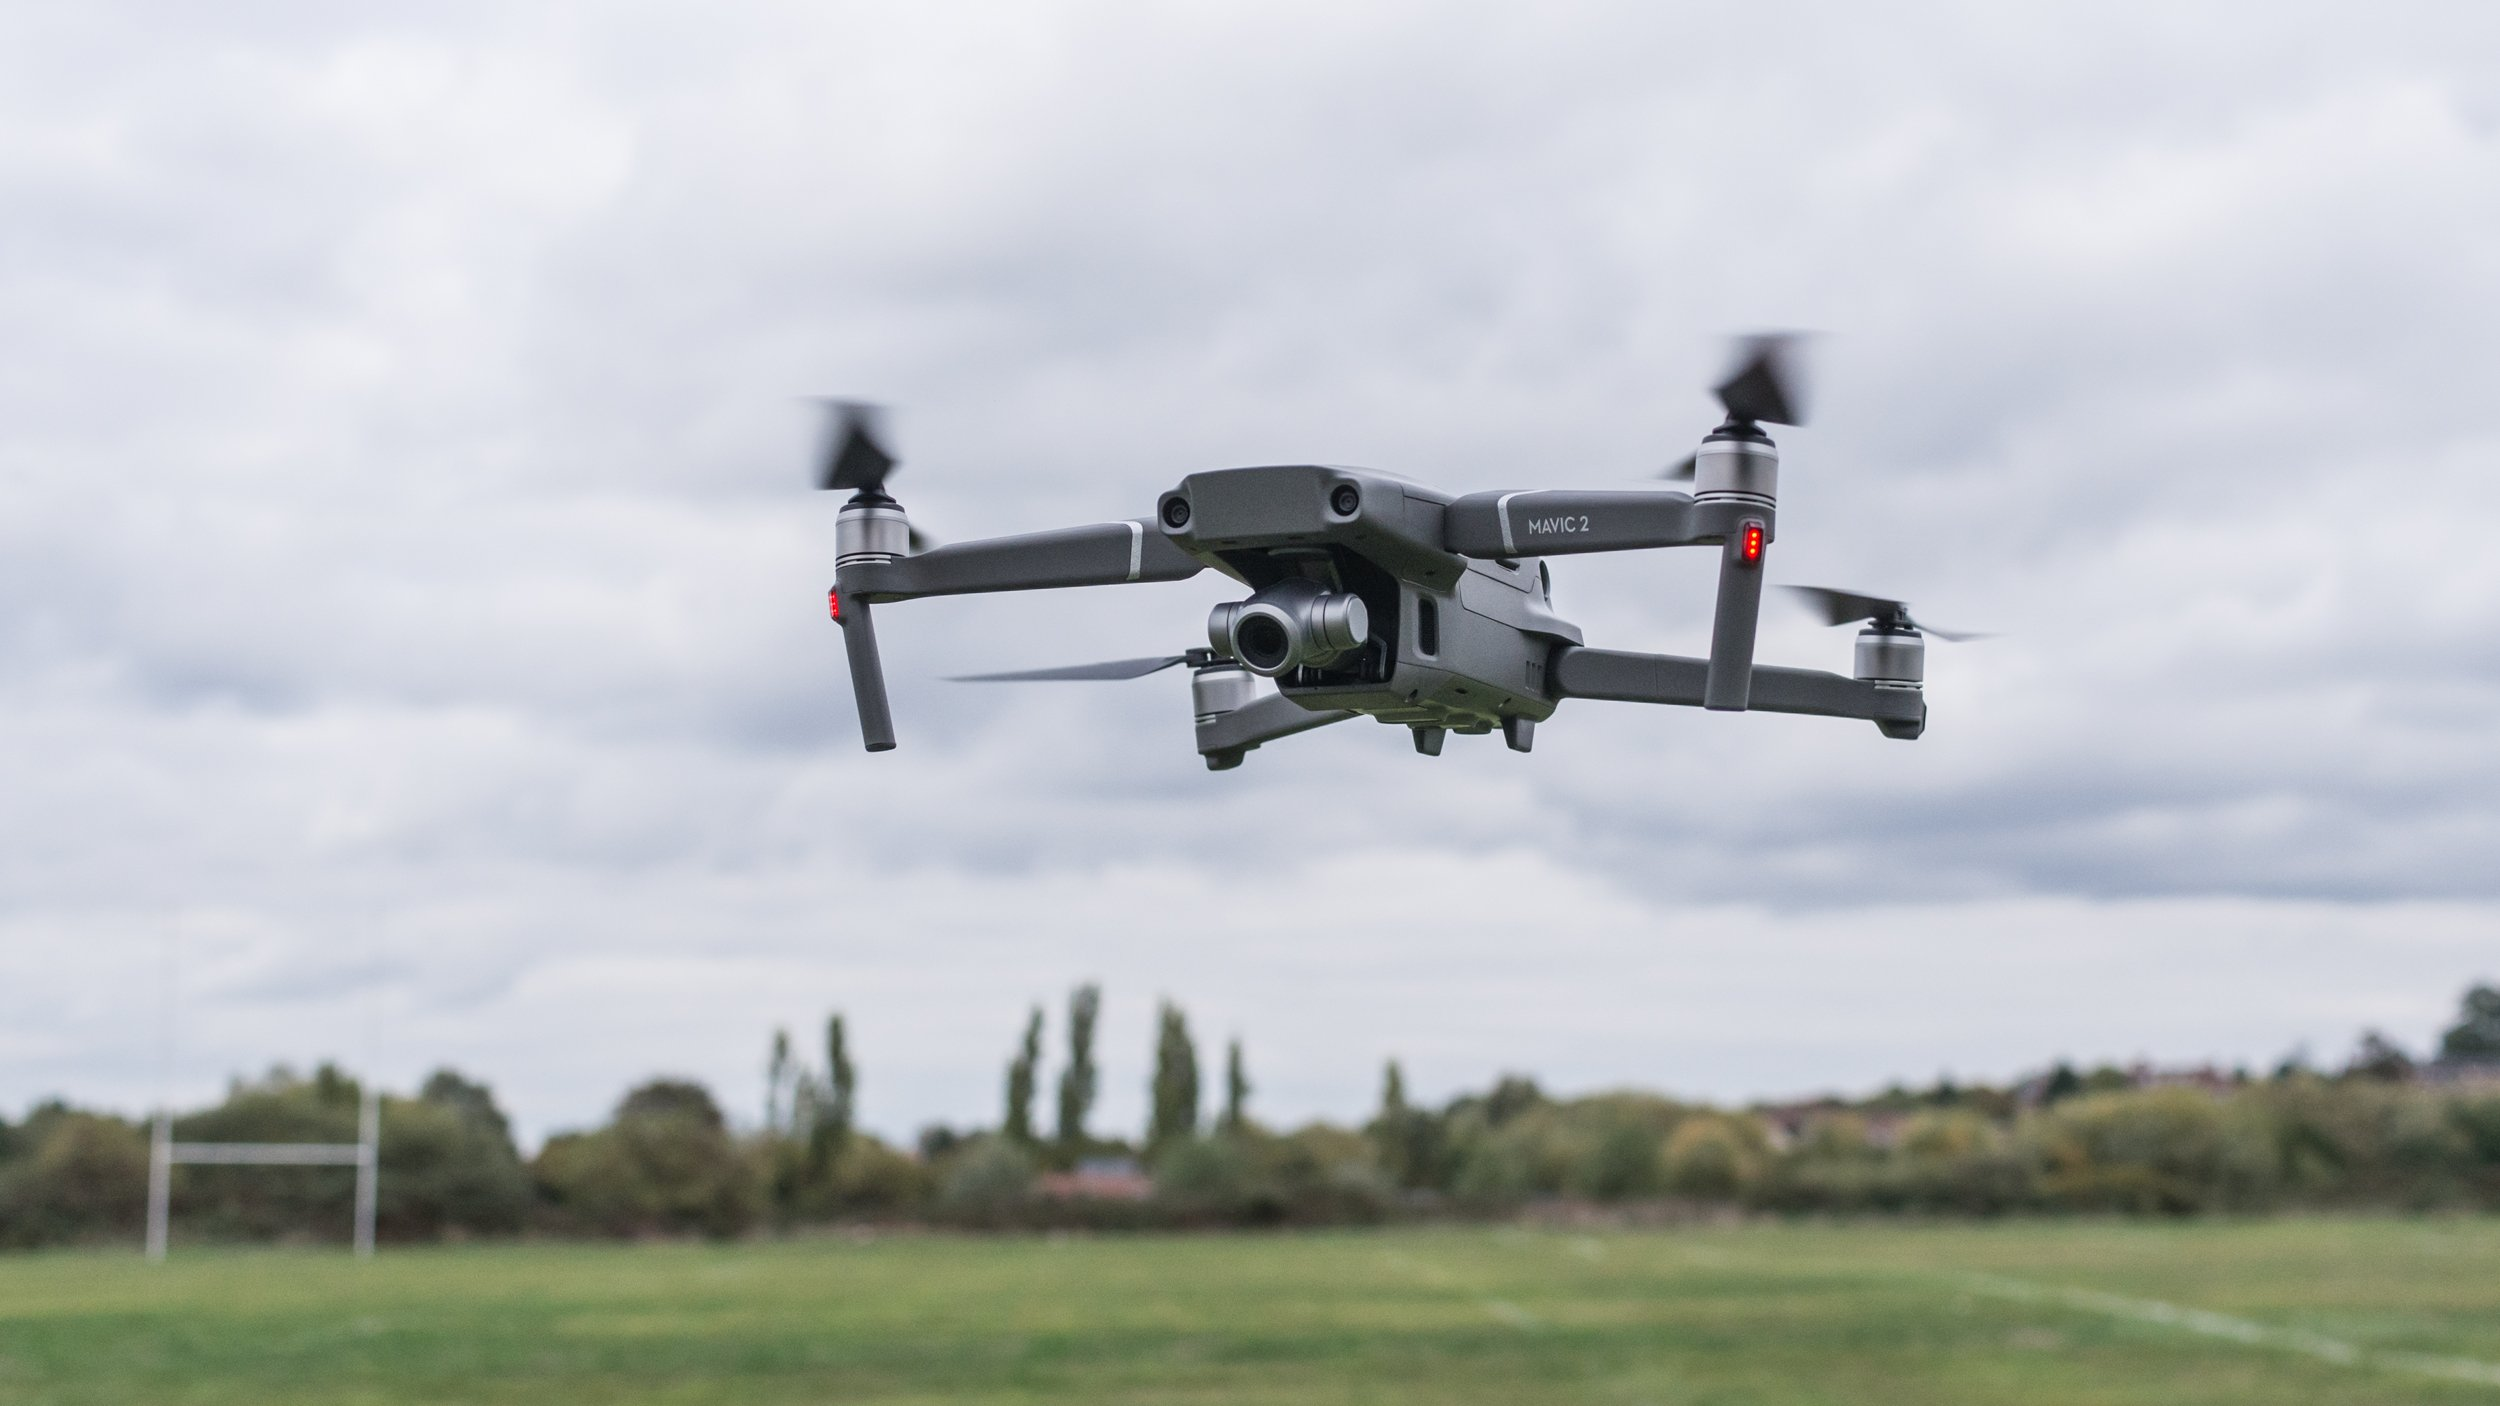 DJI Mavic 2 Zoom review: Simply the best | Expert Reviews